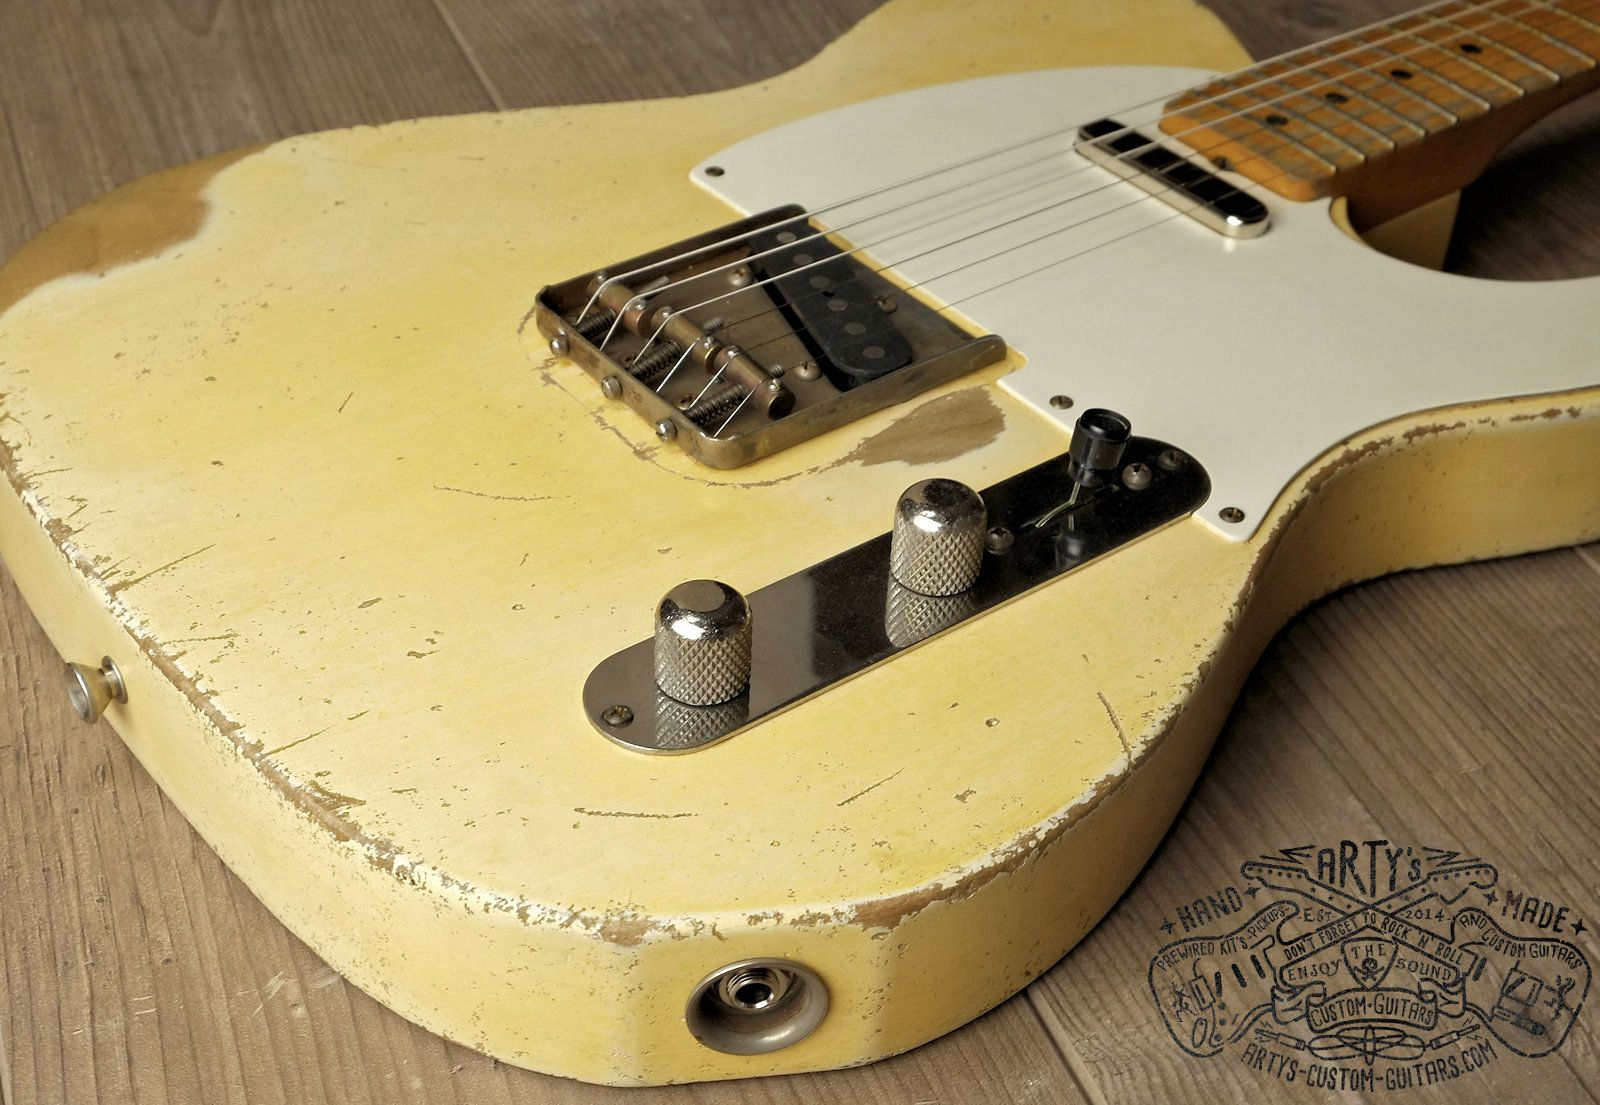 vintage blonde 1958 telecaster maple neck alder body nitro finish relic aged arty s custom guitars blond 58 tele [ 1600 x 1105 Pixel ]